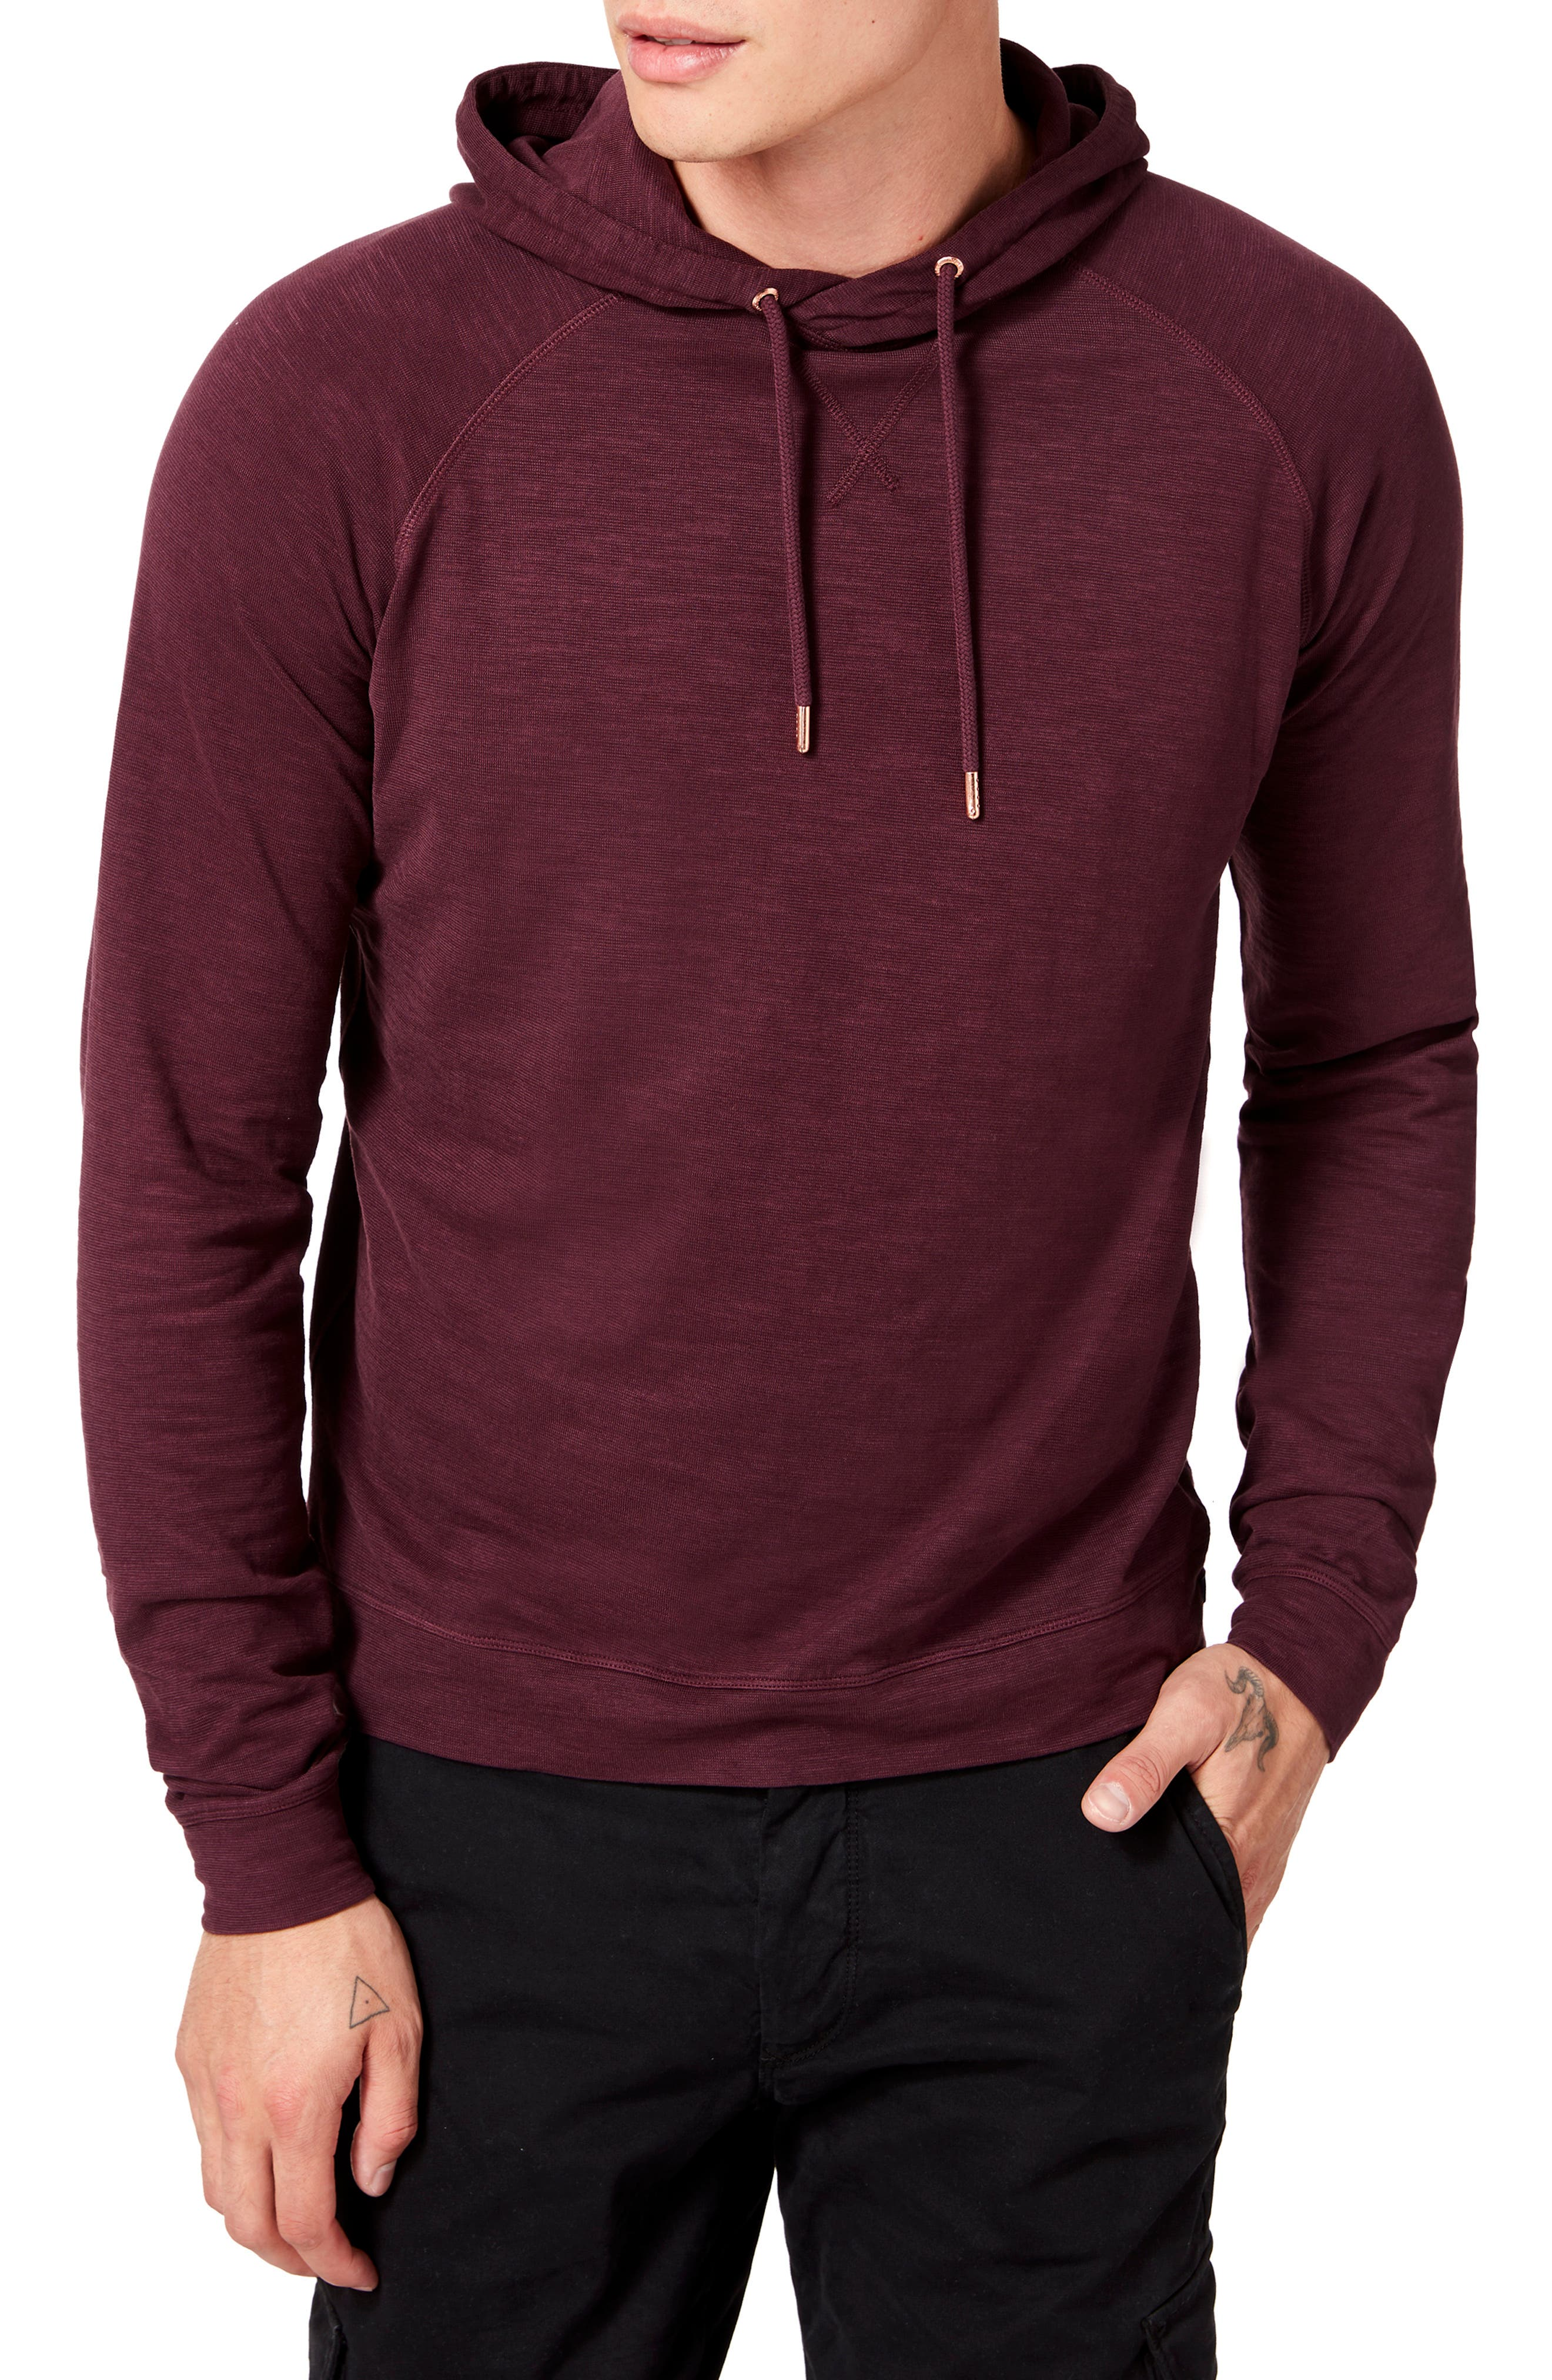 Softly slubbed cotton brings mottled color and texture to a wardrobe-staple hoodie cut in a slim fit for layerable, easy-wearing comfort. Style Name: Good Man Brand Legend Slim Fit Pullover Hoodie. Style Number: 5862590. Available in stores.